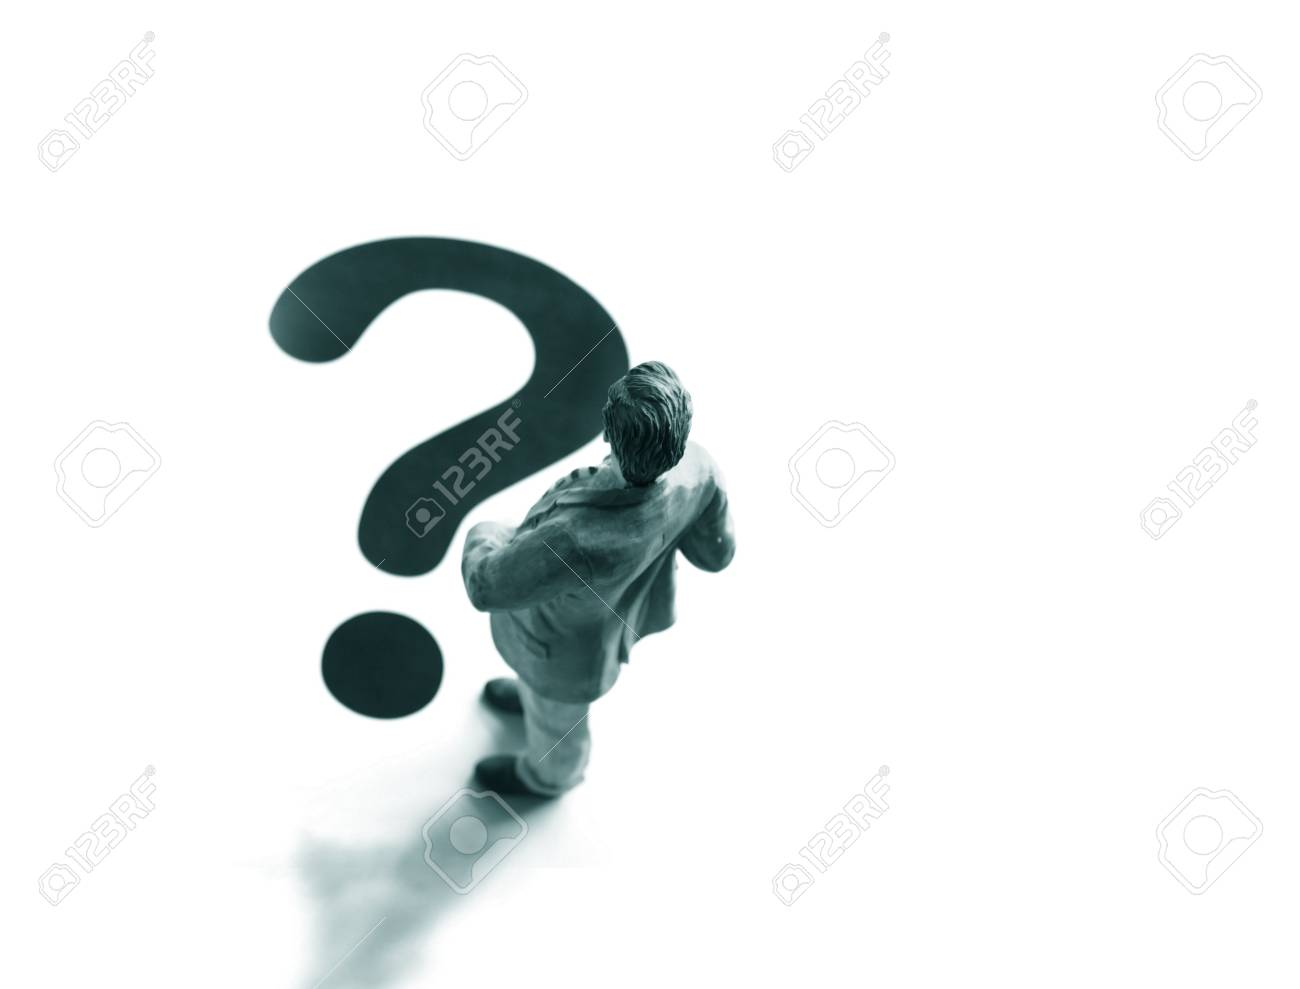 business man figure in front of a question mark Stock Photo - 6508177